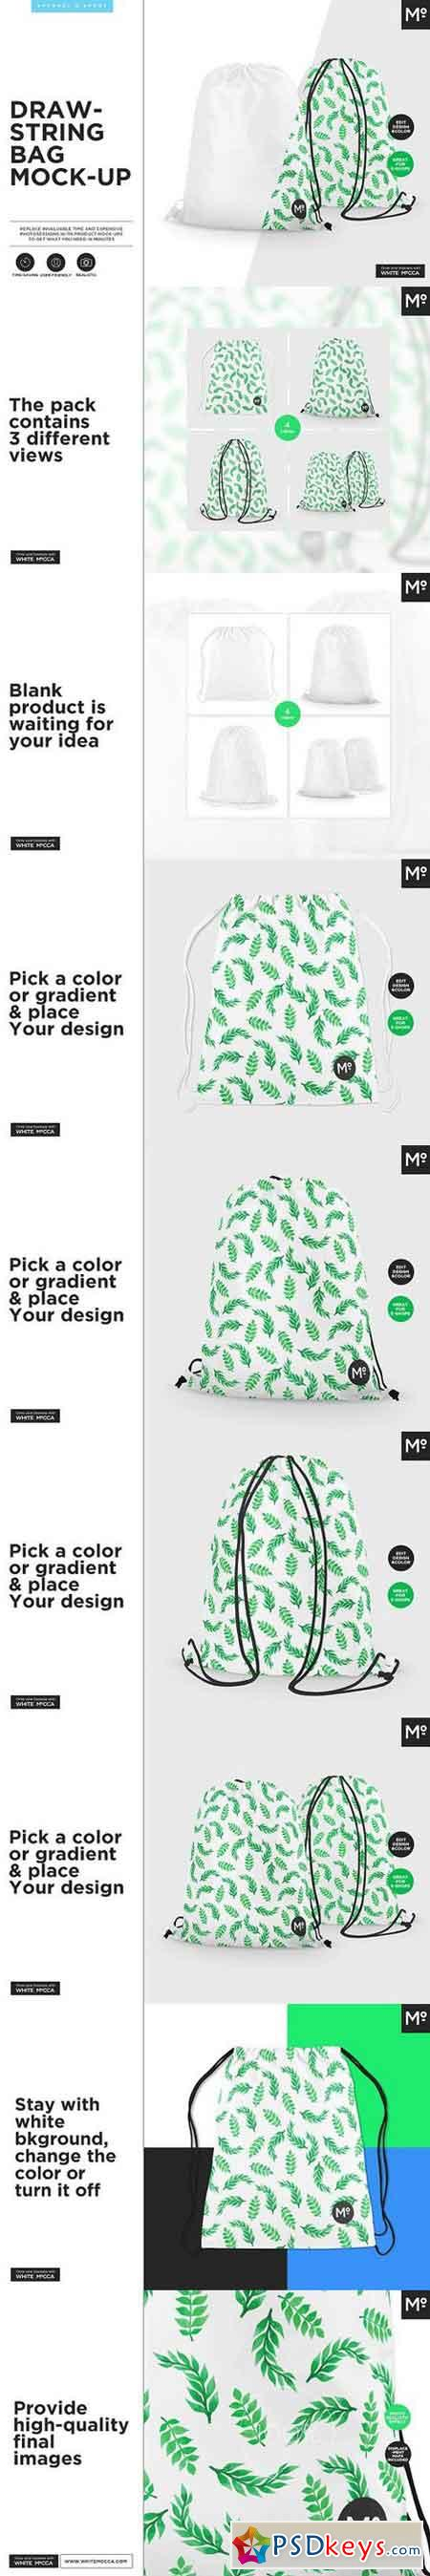 Drawstring Bag Mock-up 1674808